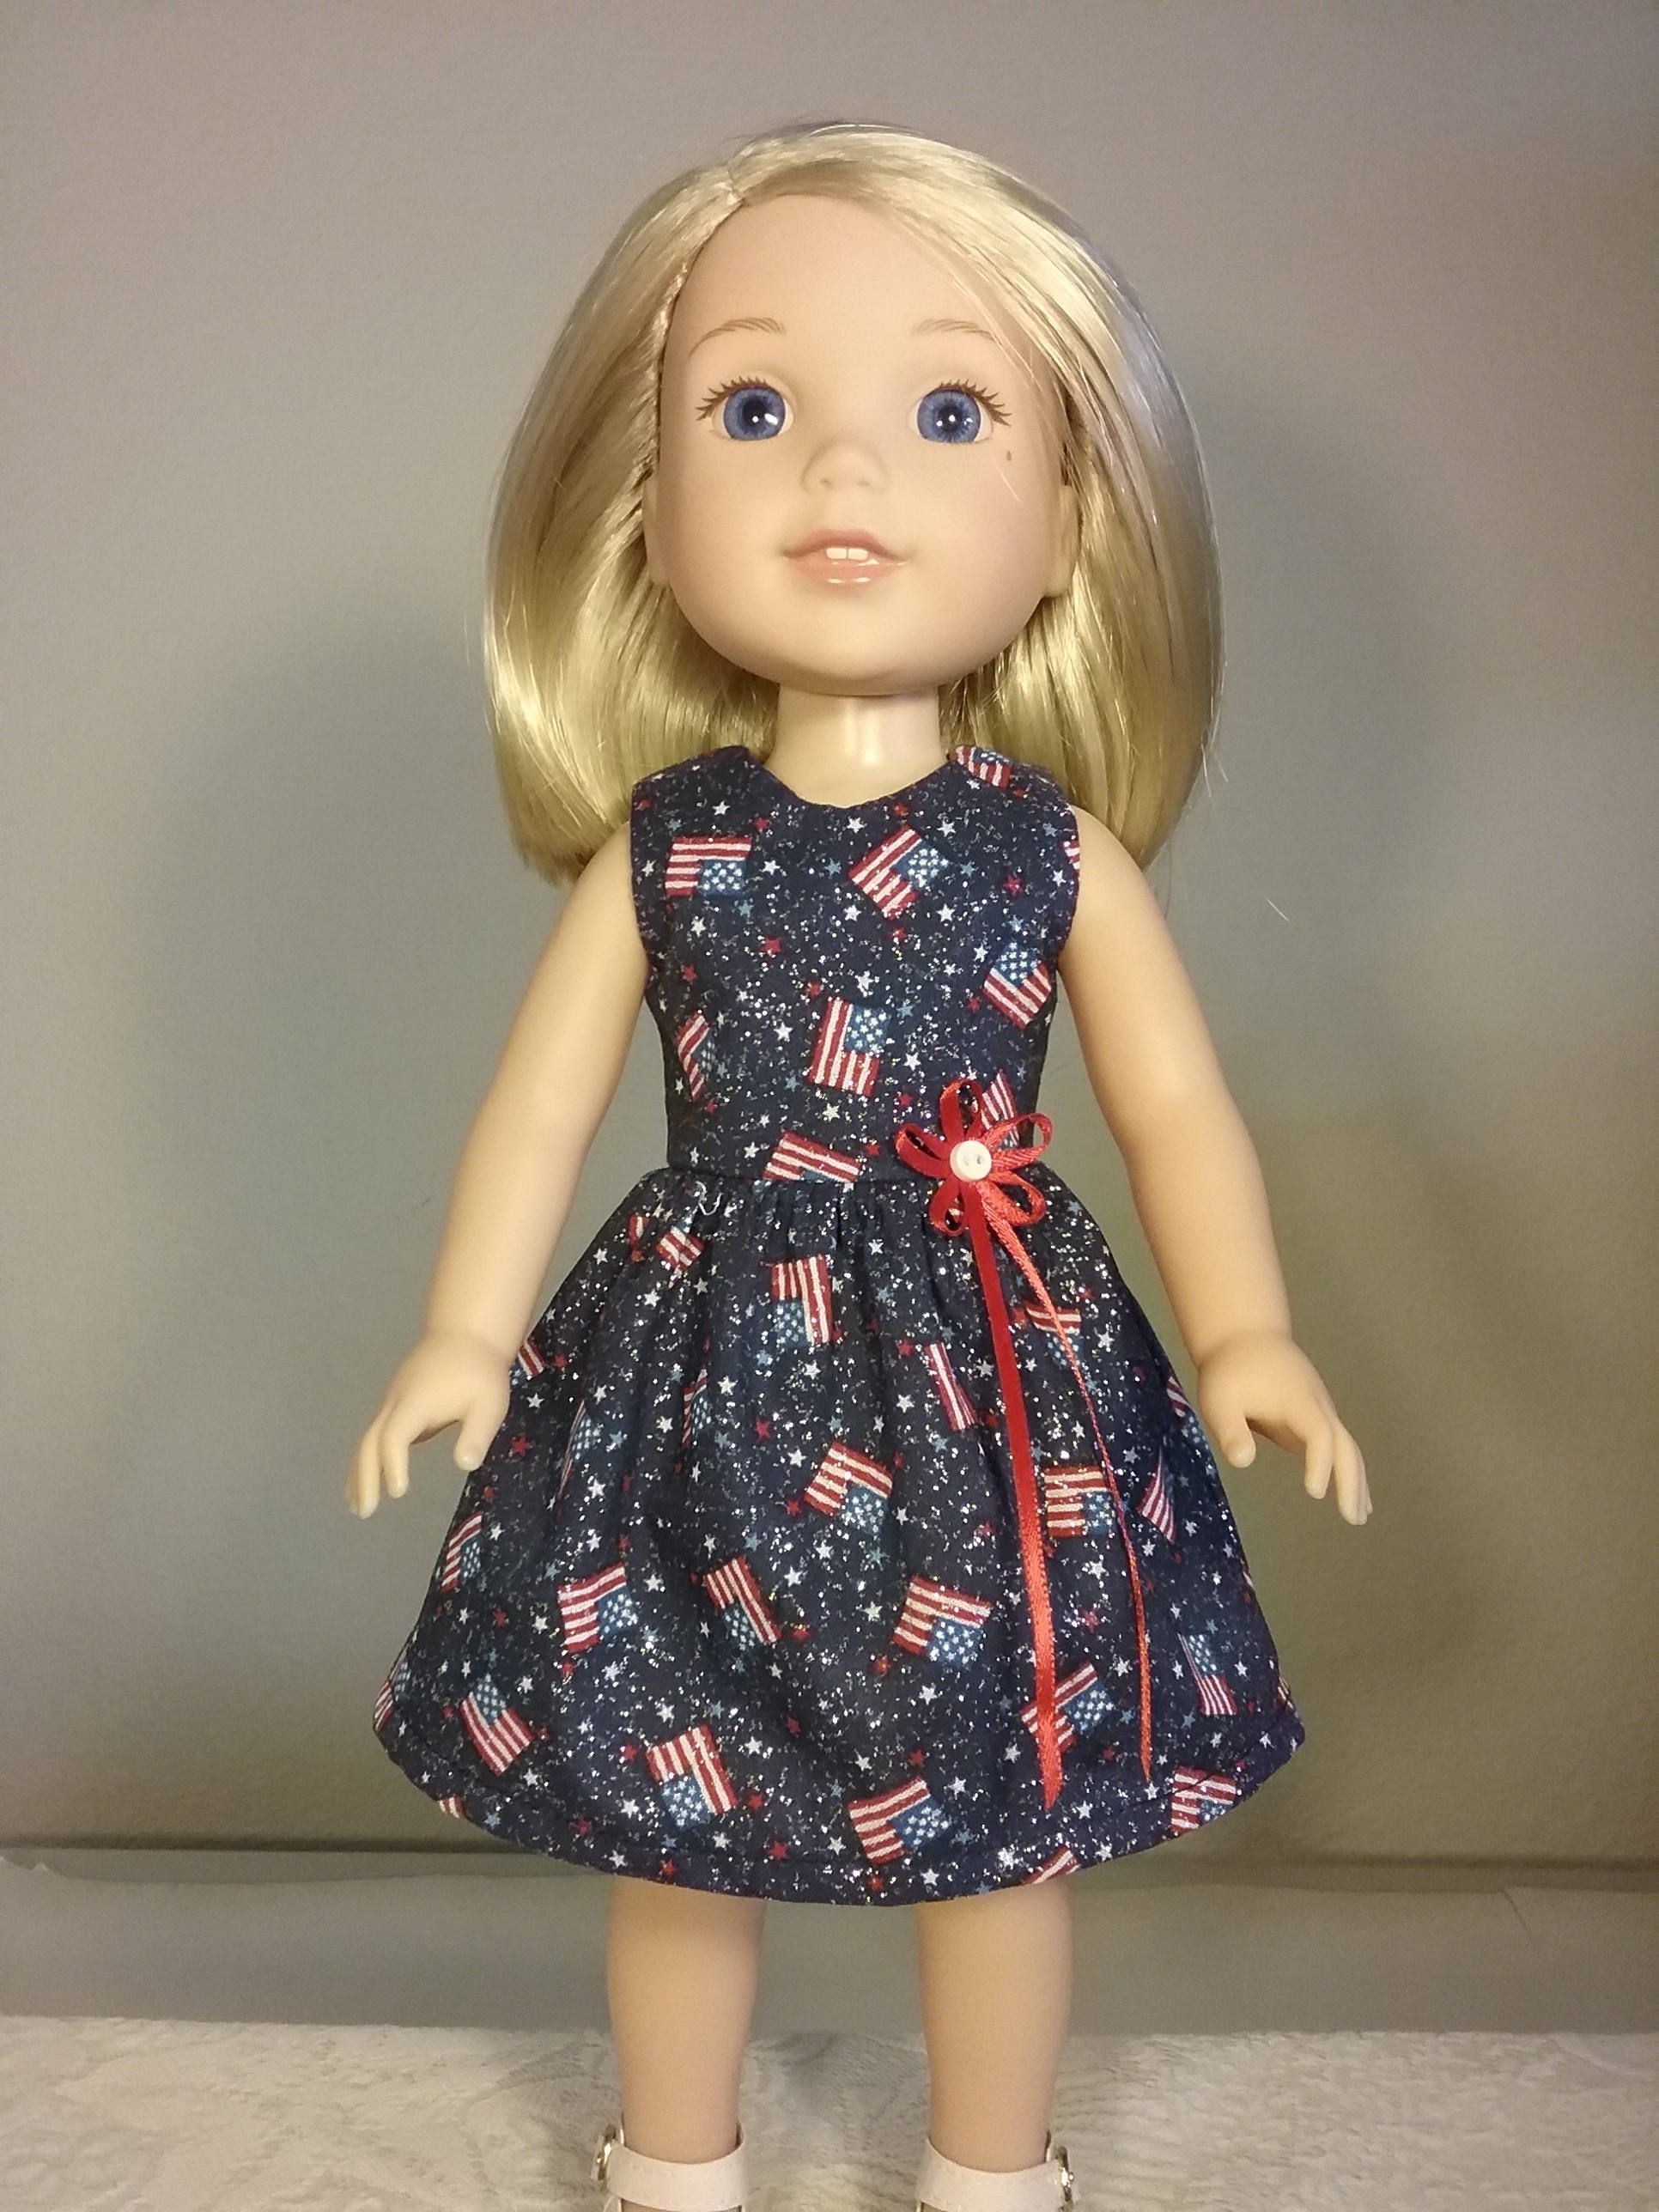 Old fashioned doll clothes 1